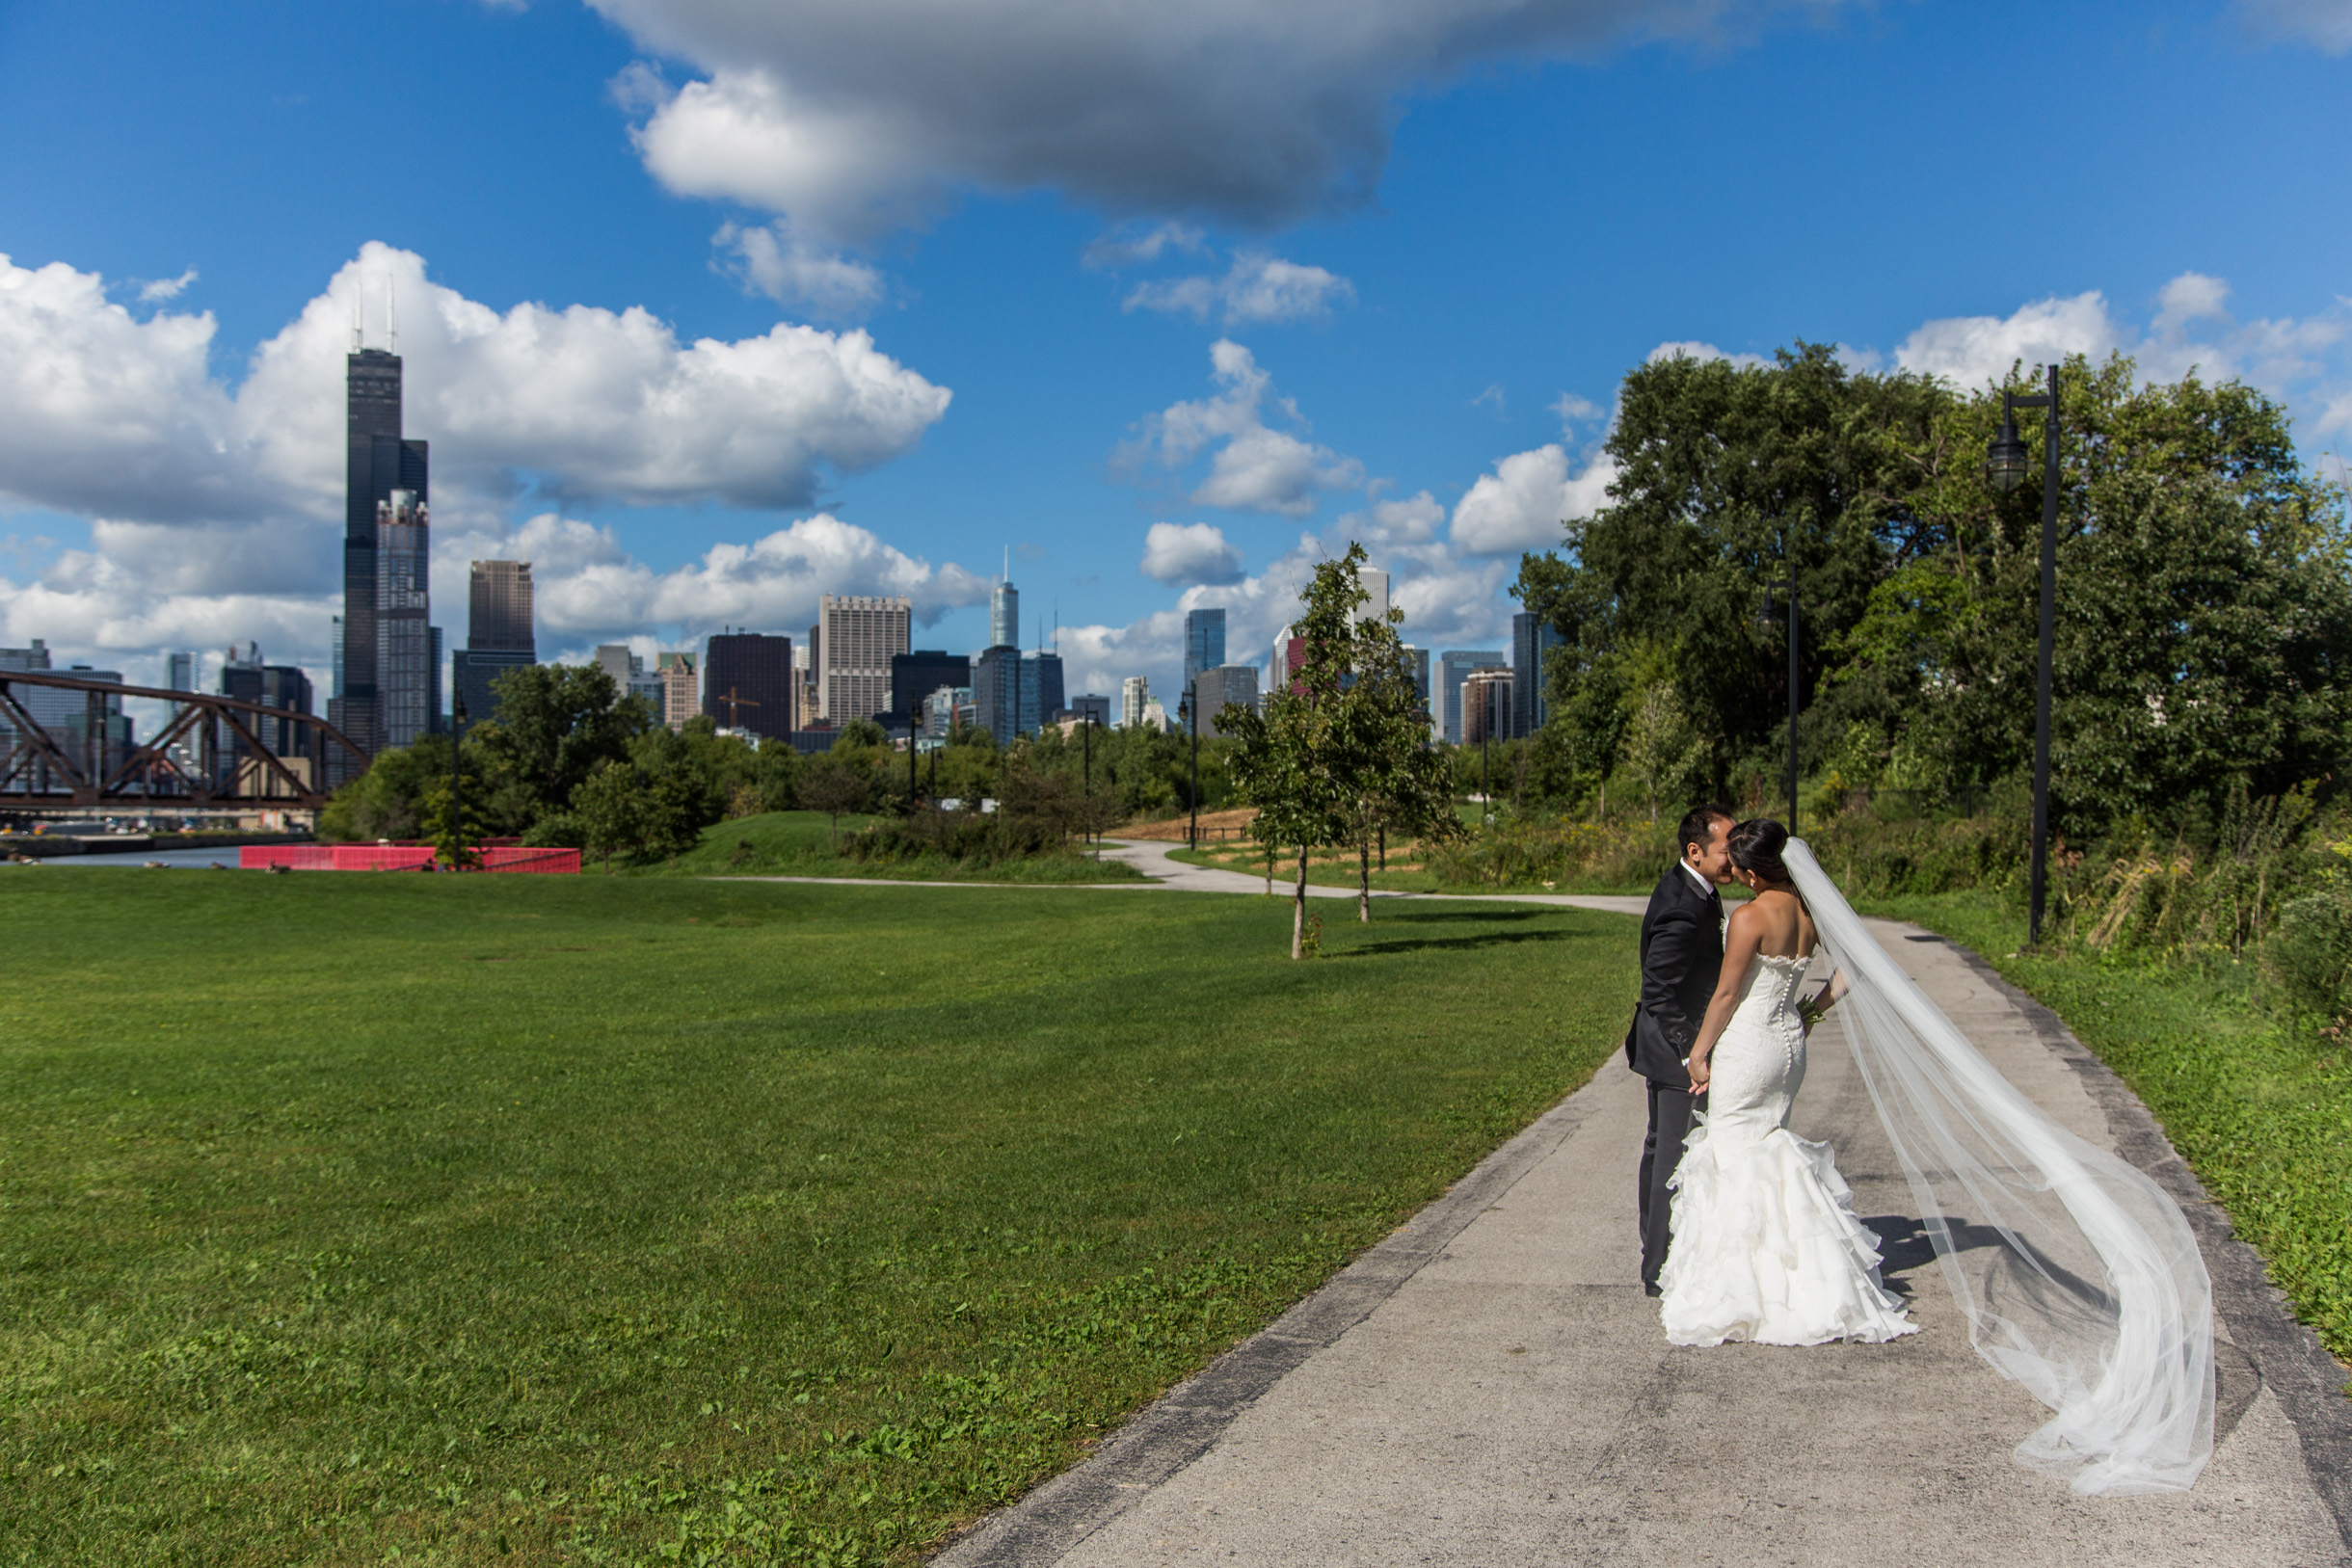 Bride's veil blowing in the wind with Chicago skyline in background